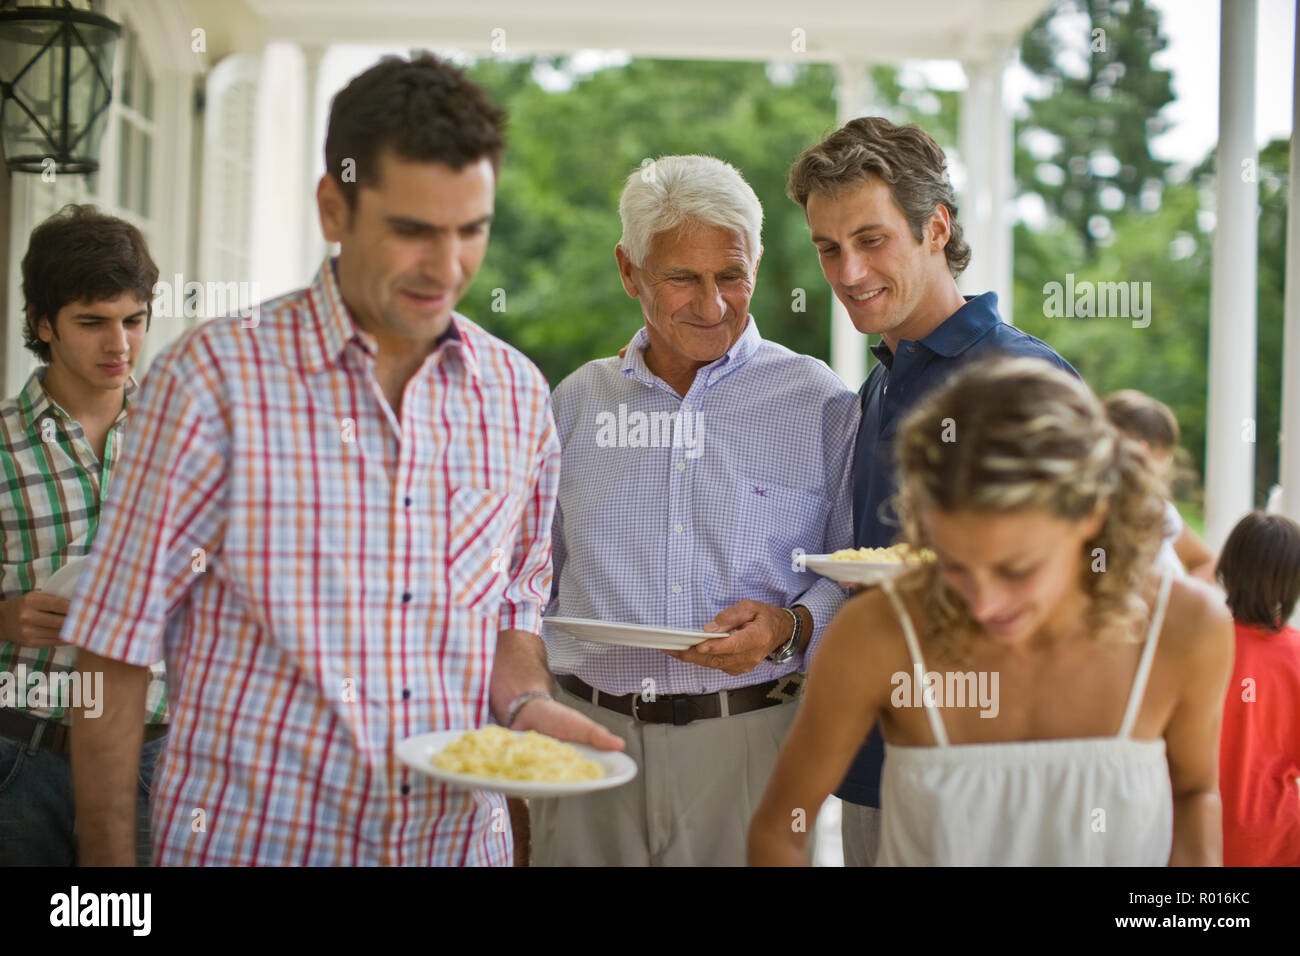 Senior adult man standing with his mid-adult son waiting to get some pasta while his family dish up dinner. - Stock Image